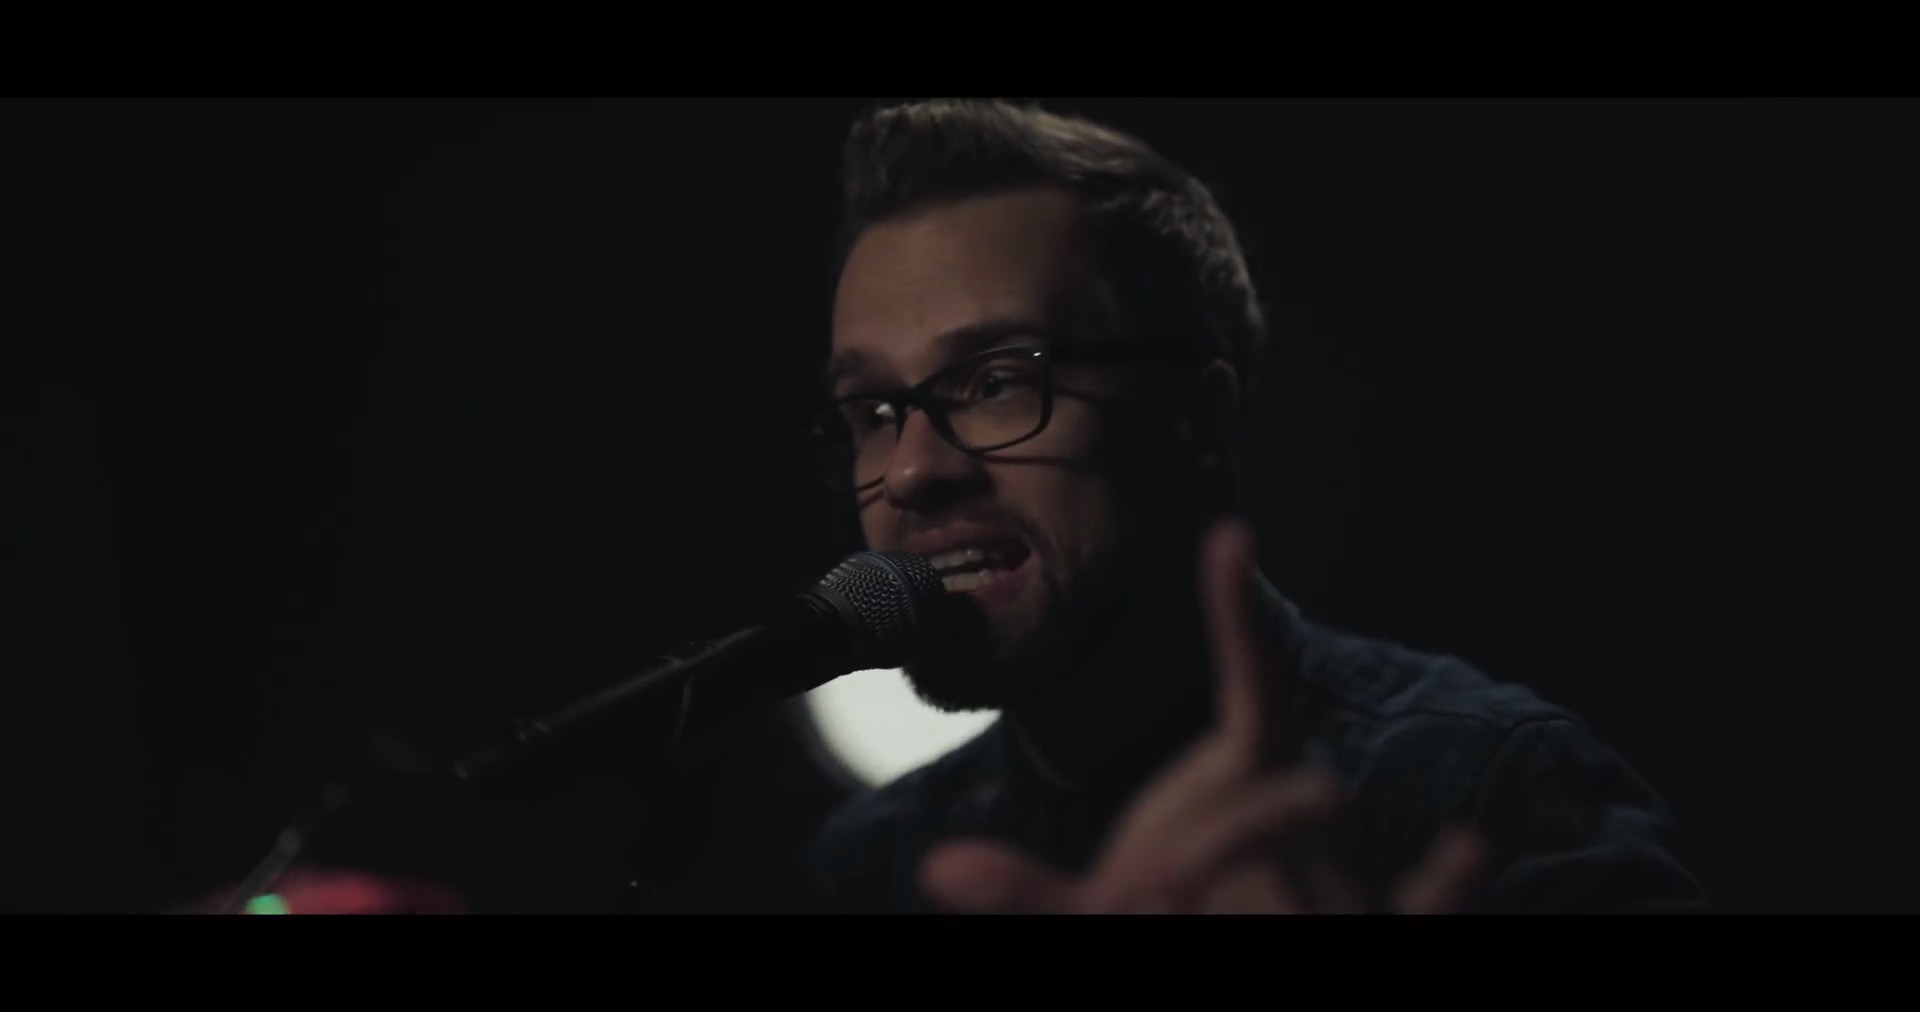 BLACK RIVER CHRISTIAN ARTIST JOSH WILSON RELEASES BORROW (ONE DAY AT A TIME) - THE SOLO EXPERIENCE MUSIC VIDEO